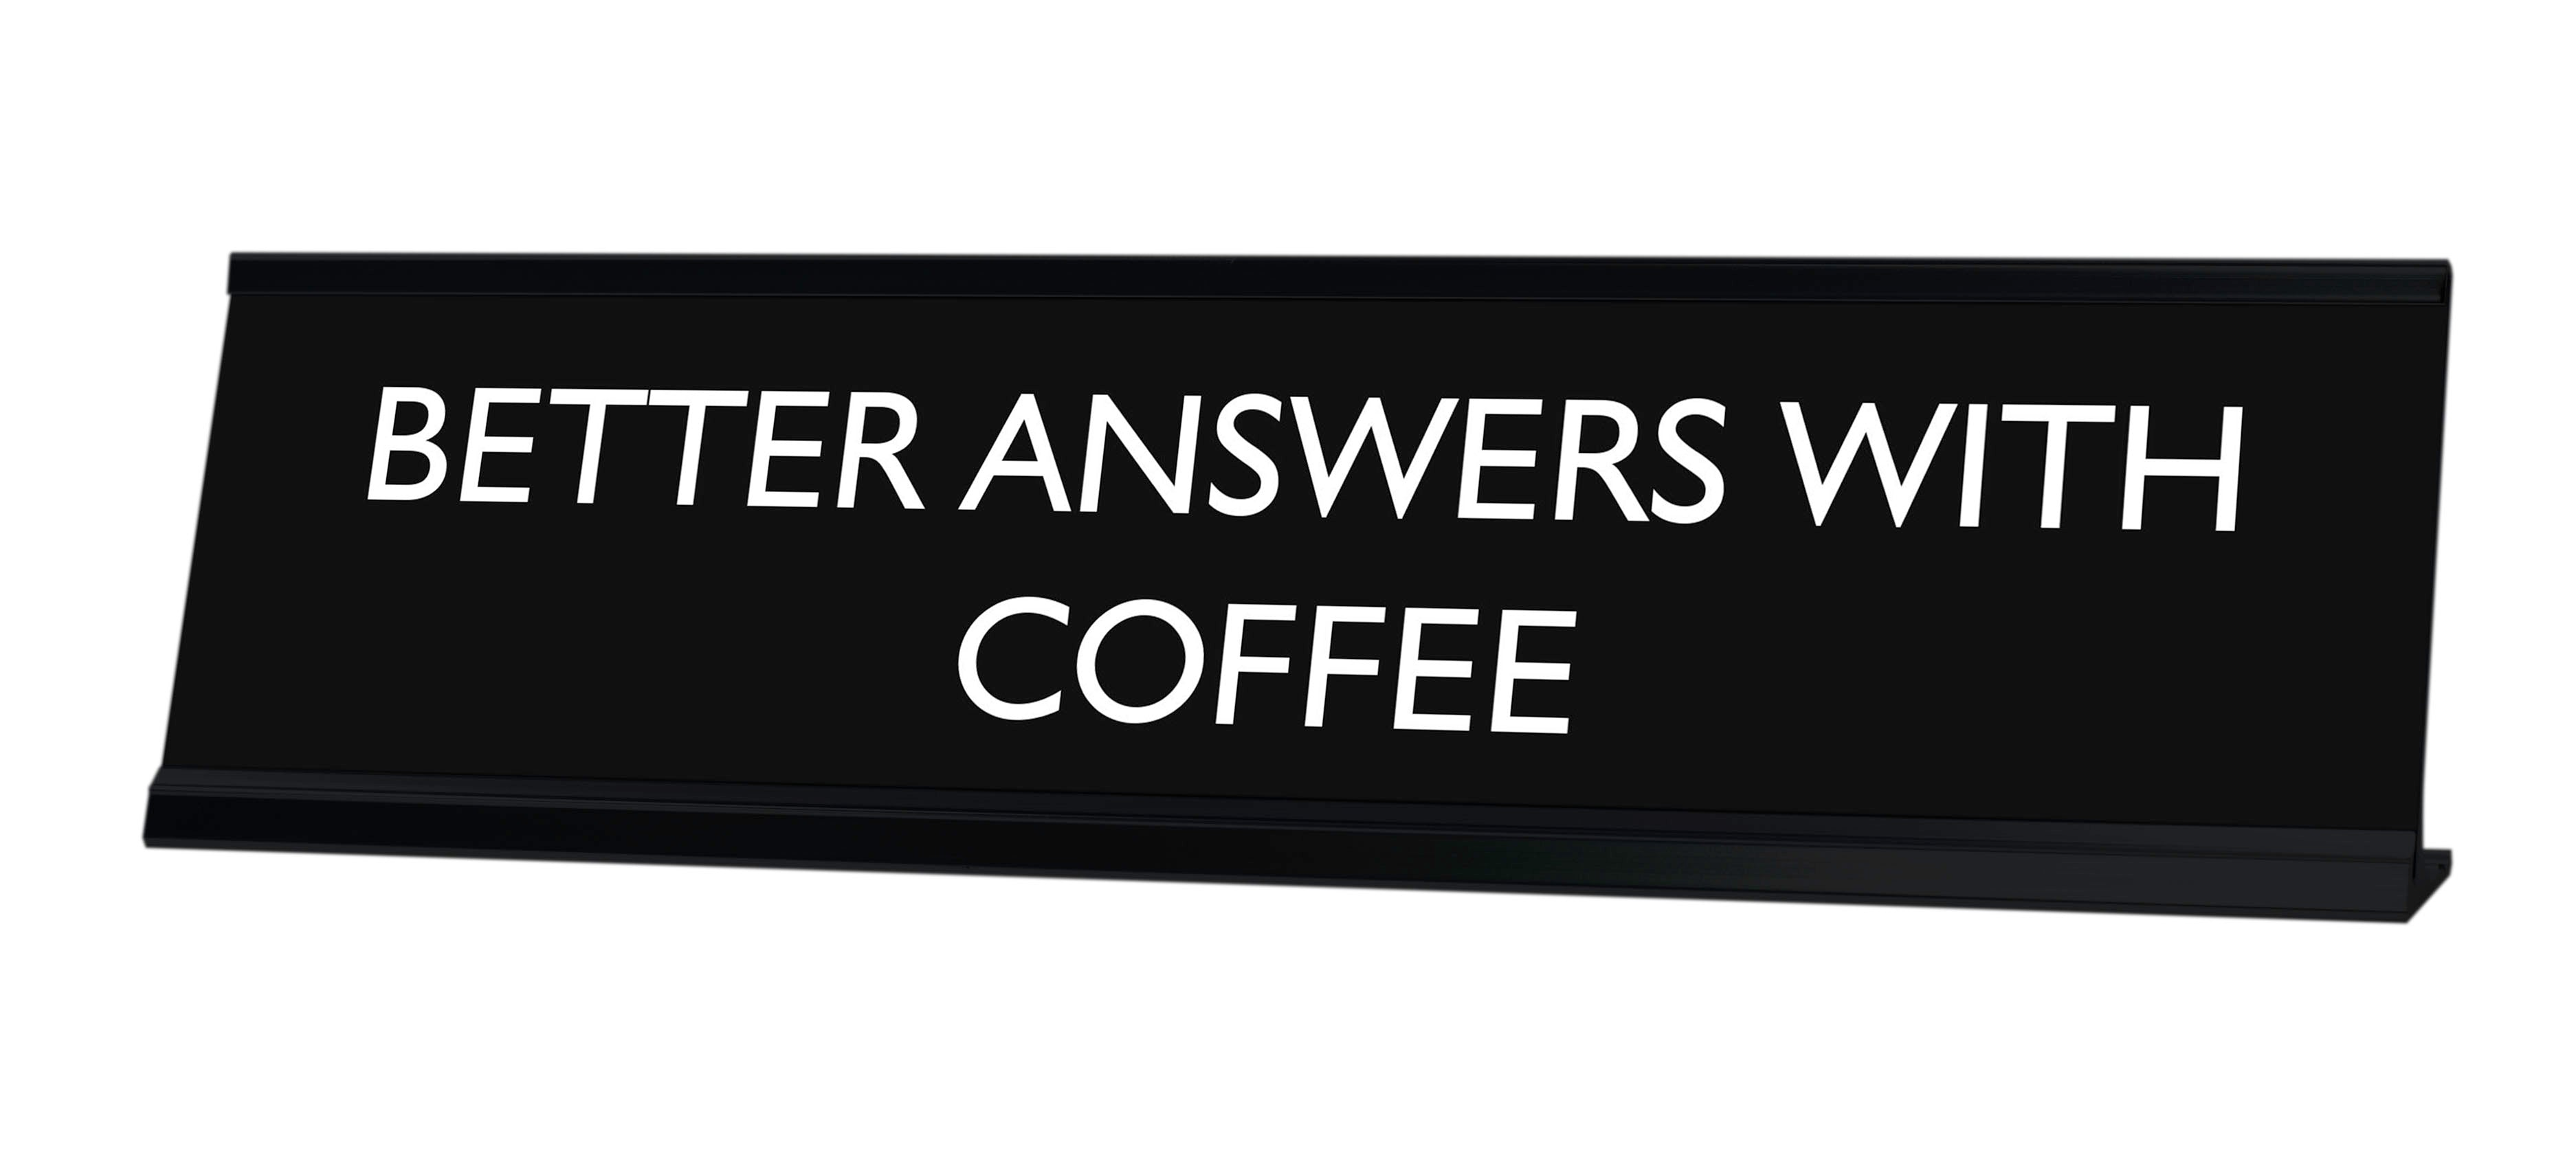 BETTER ANSWERS WITH COFFEE Novelty Desk Sign